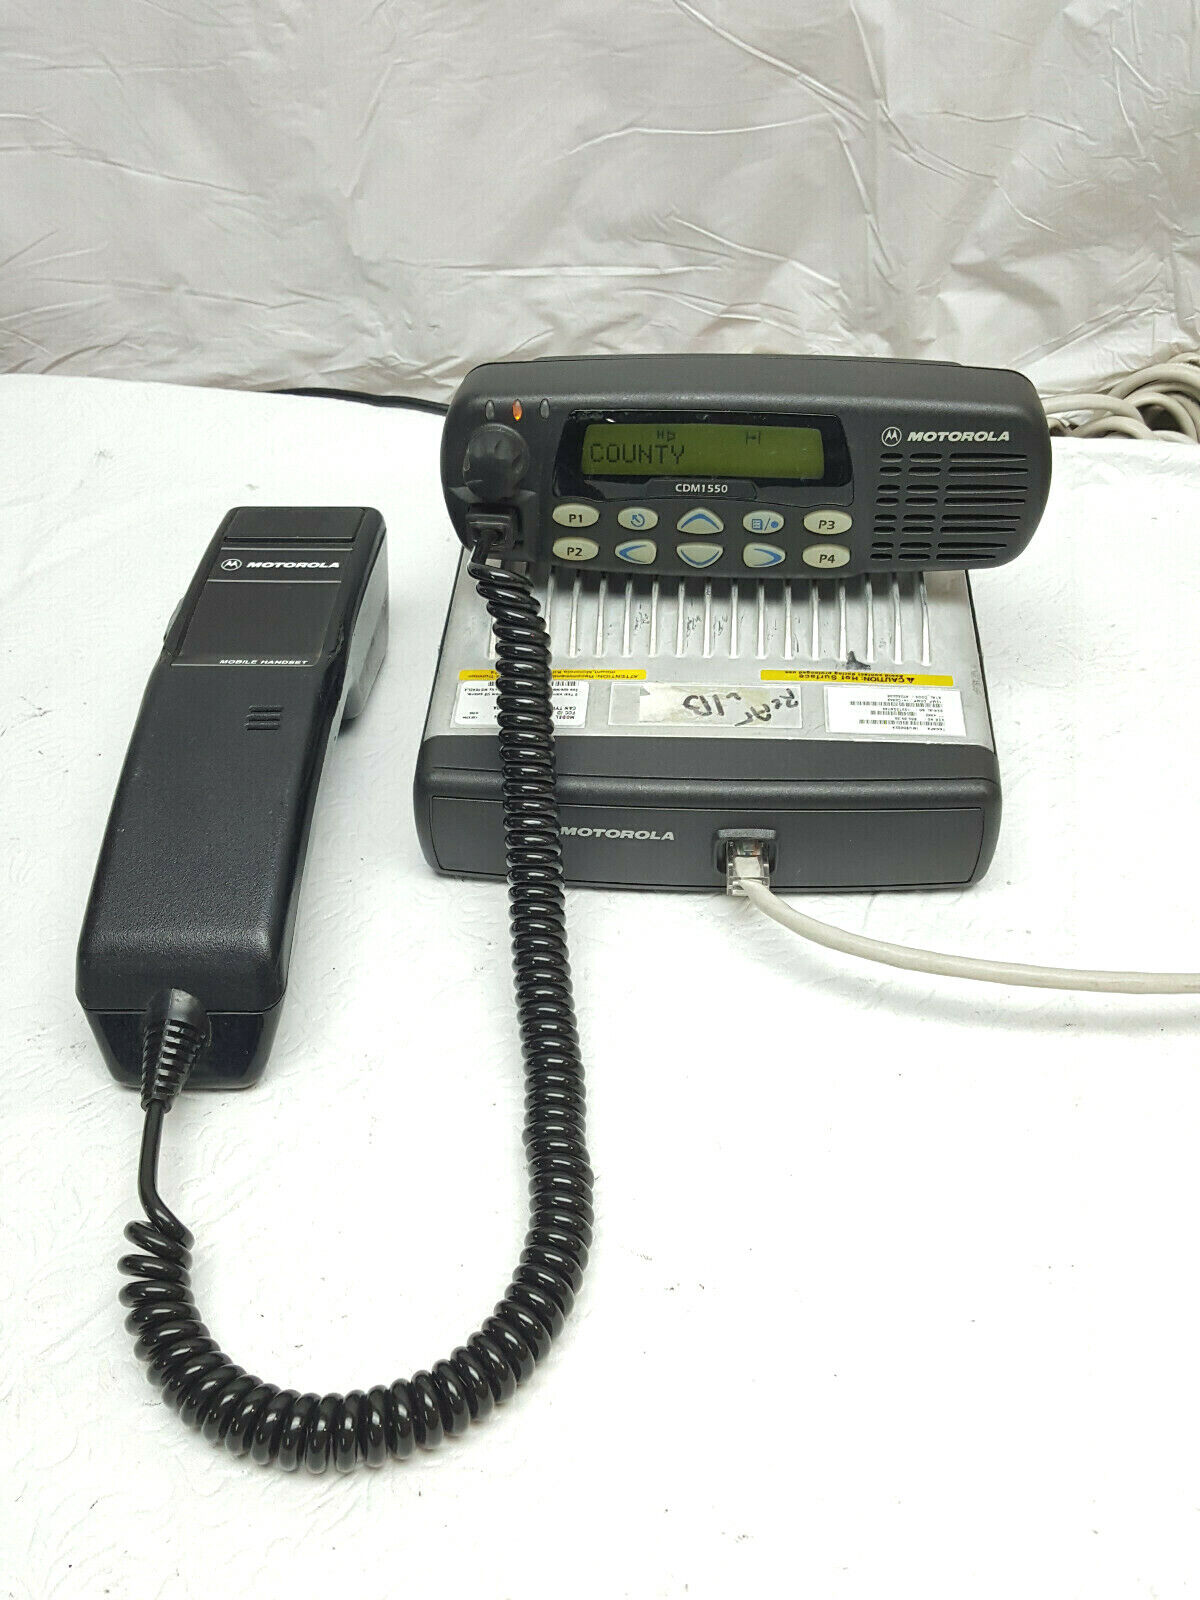 Motorola CDM1550 Low Band VHF w/ Remote Head 42-50MHz & Mobile Telephone Handset. Available Now for 265.99